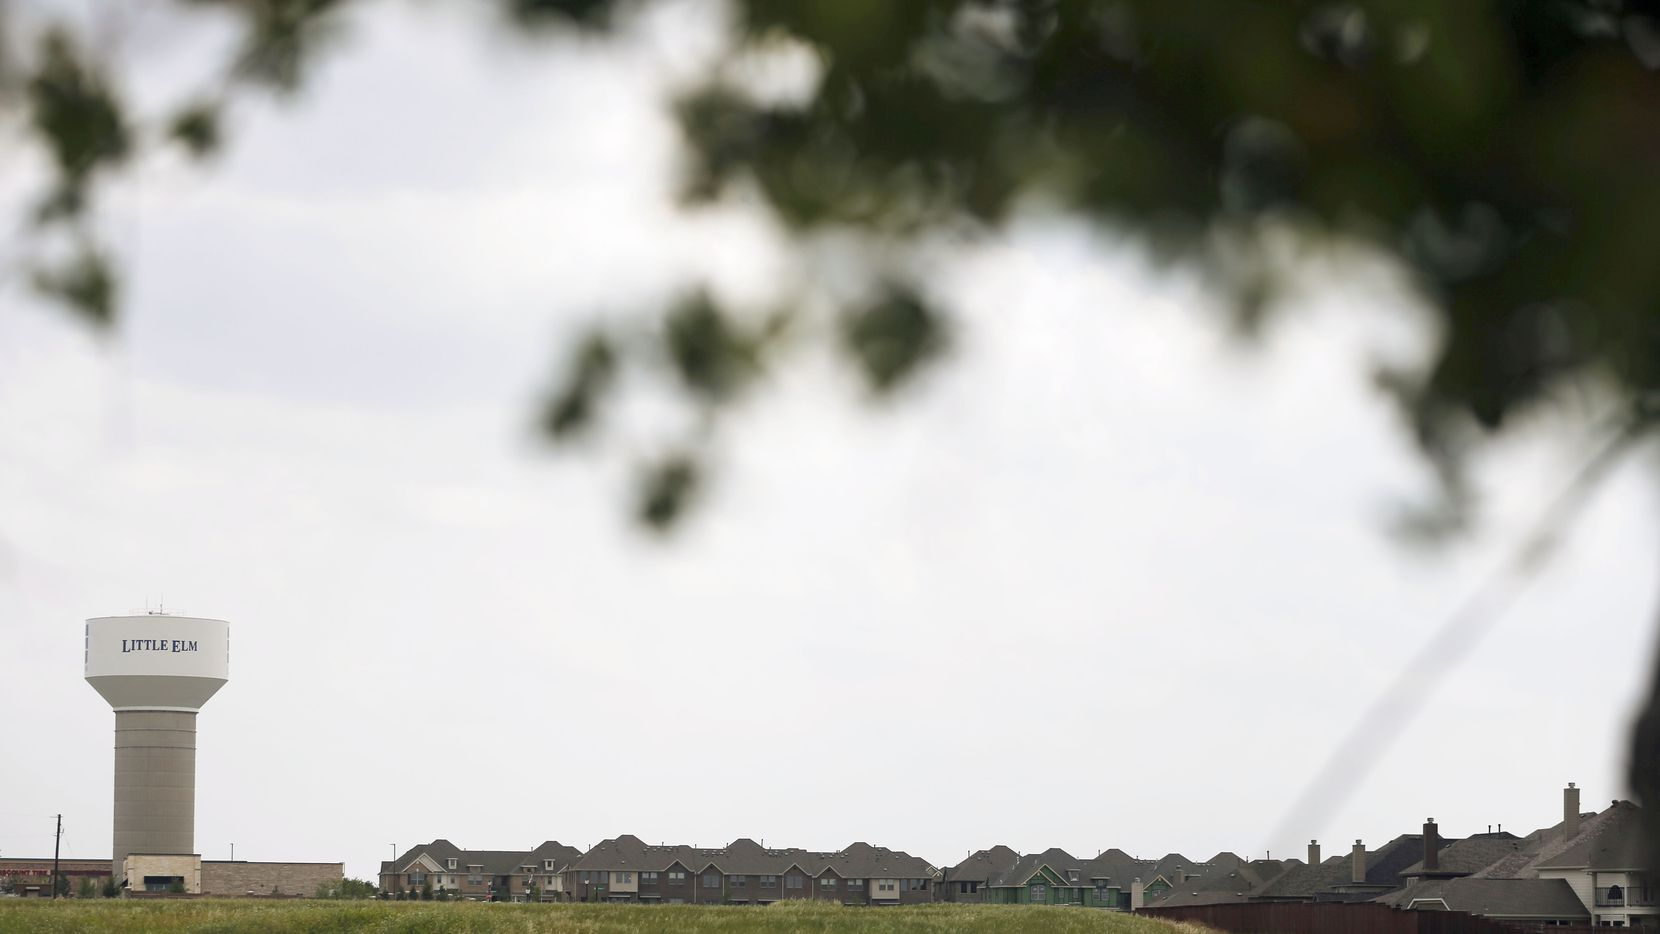 Undeveloped land near FM423 and Woodlake Parkway in Little Elm, Texas on Wednesday, May 22, 2019. Little Elm, which had just 3,500 people as of the 2000 Census, surpassed 50,000 residents in 2018. (Vernon Bryant/The Dallas Morning News)